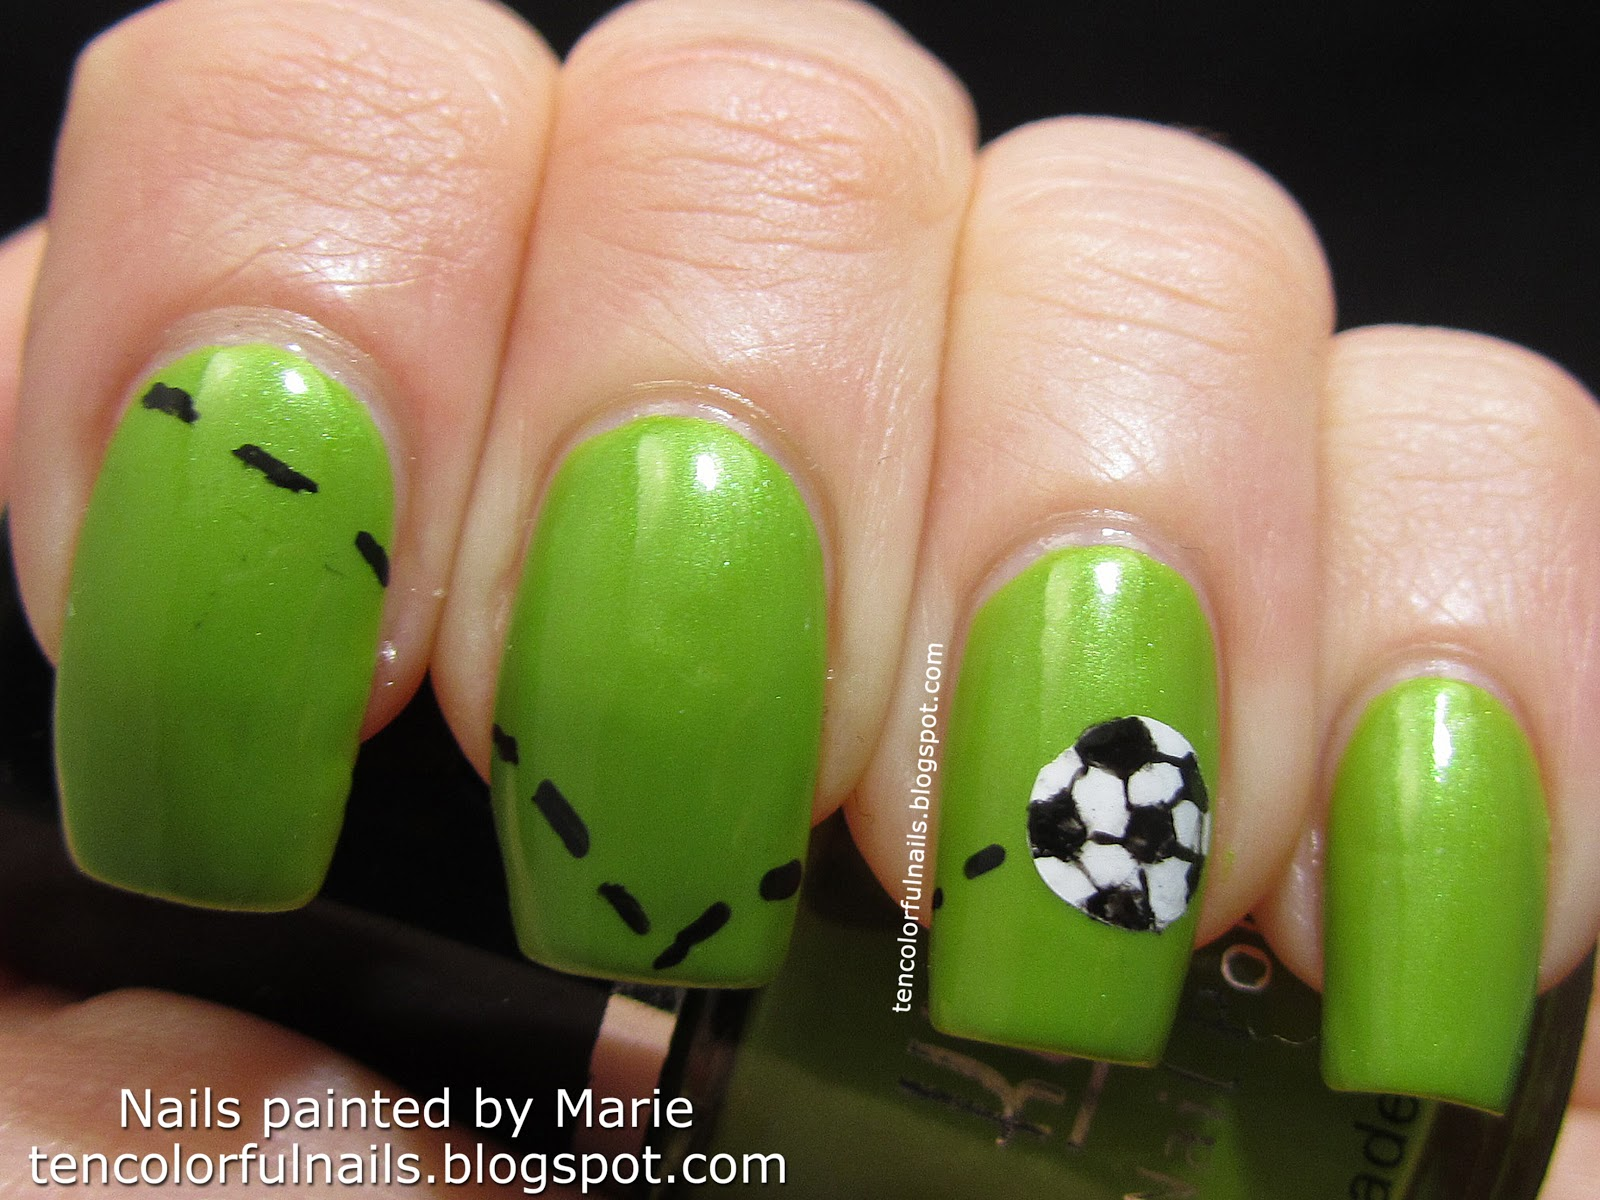 Nail designs with little balls awesome base ball nail designs view images ten colorful nails prinsesfo Image collections